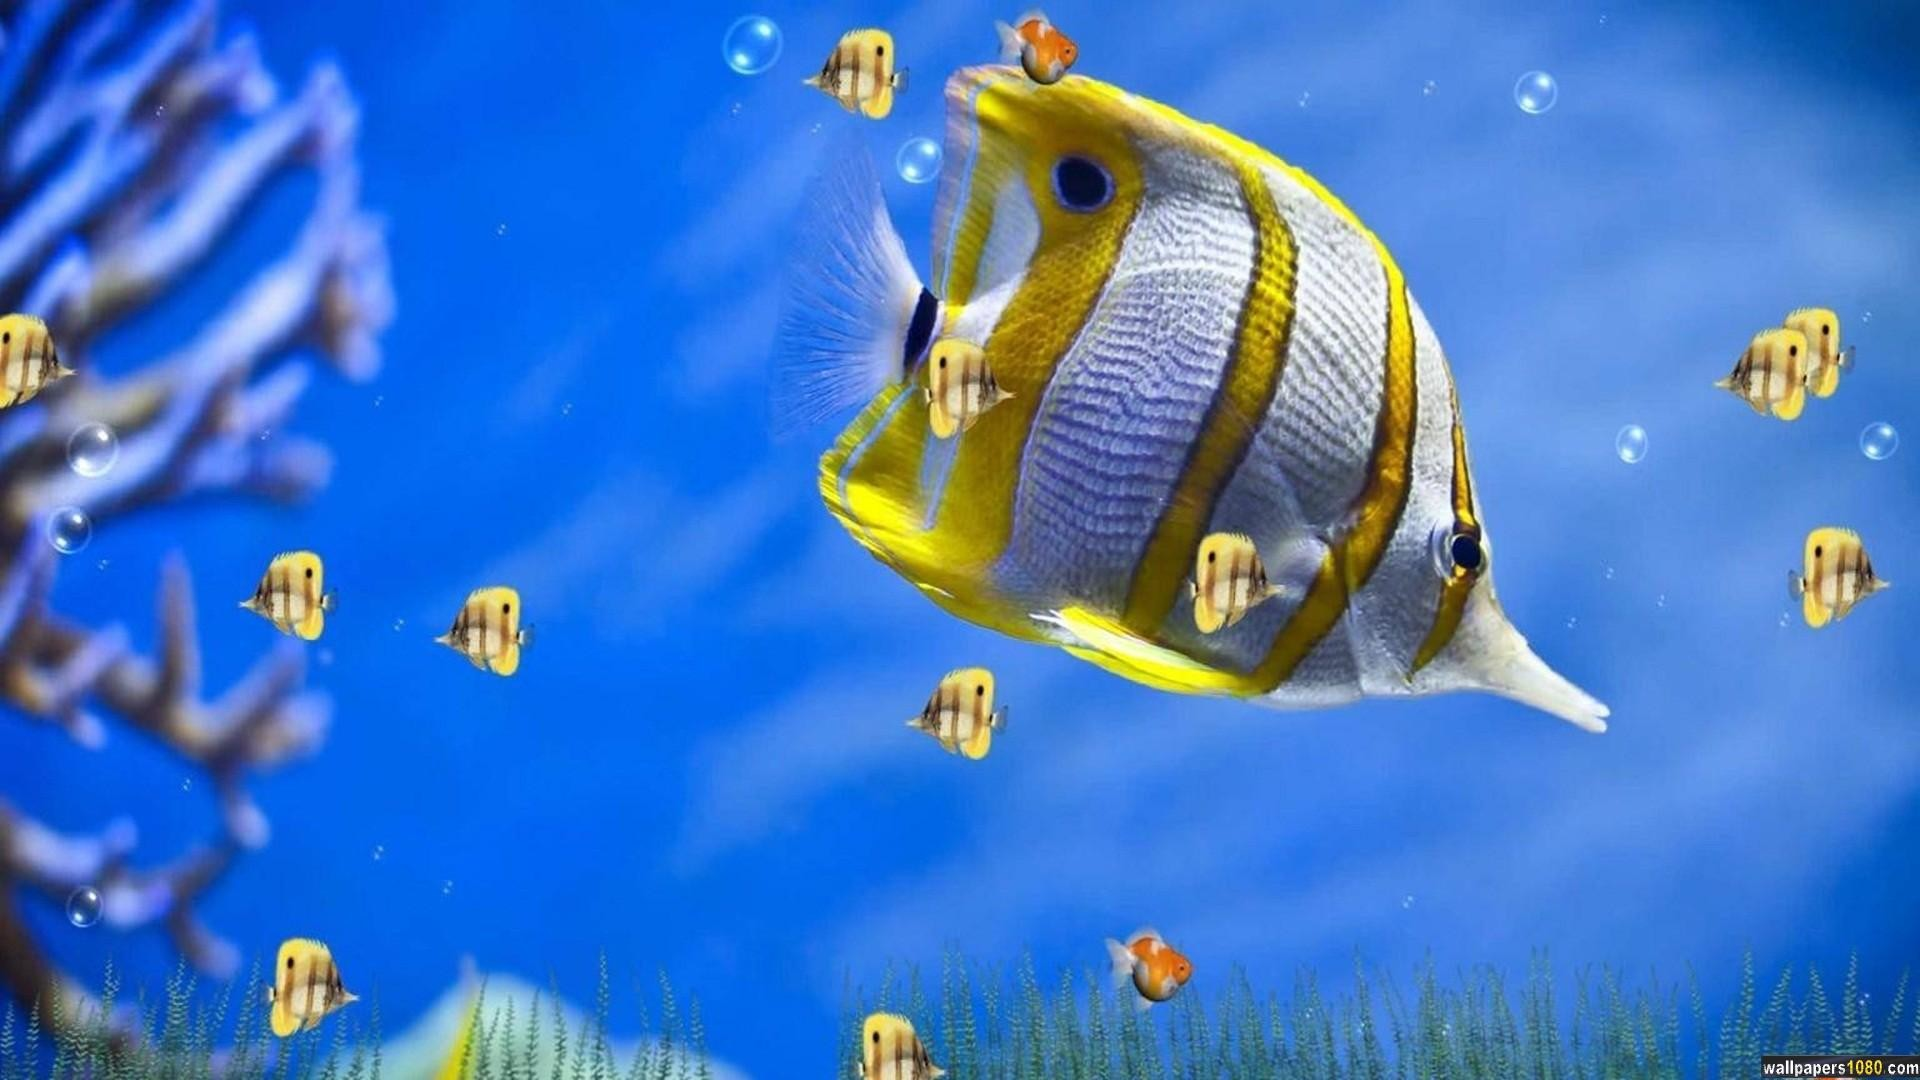 3D Fishes Windows 10 Wallpaper | 1080p Wallpapers, Hd Wallpapers .